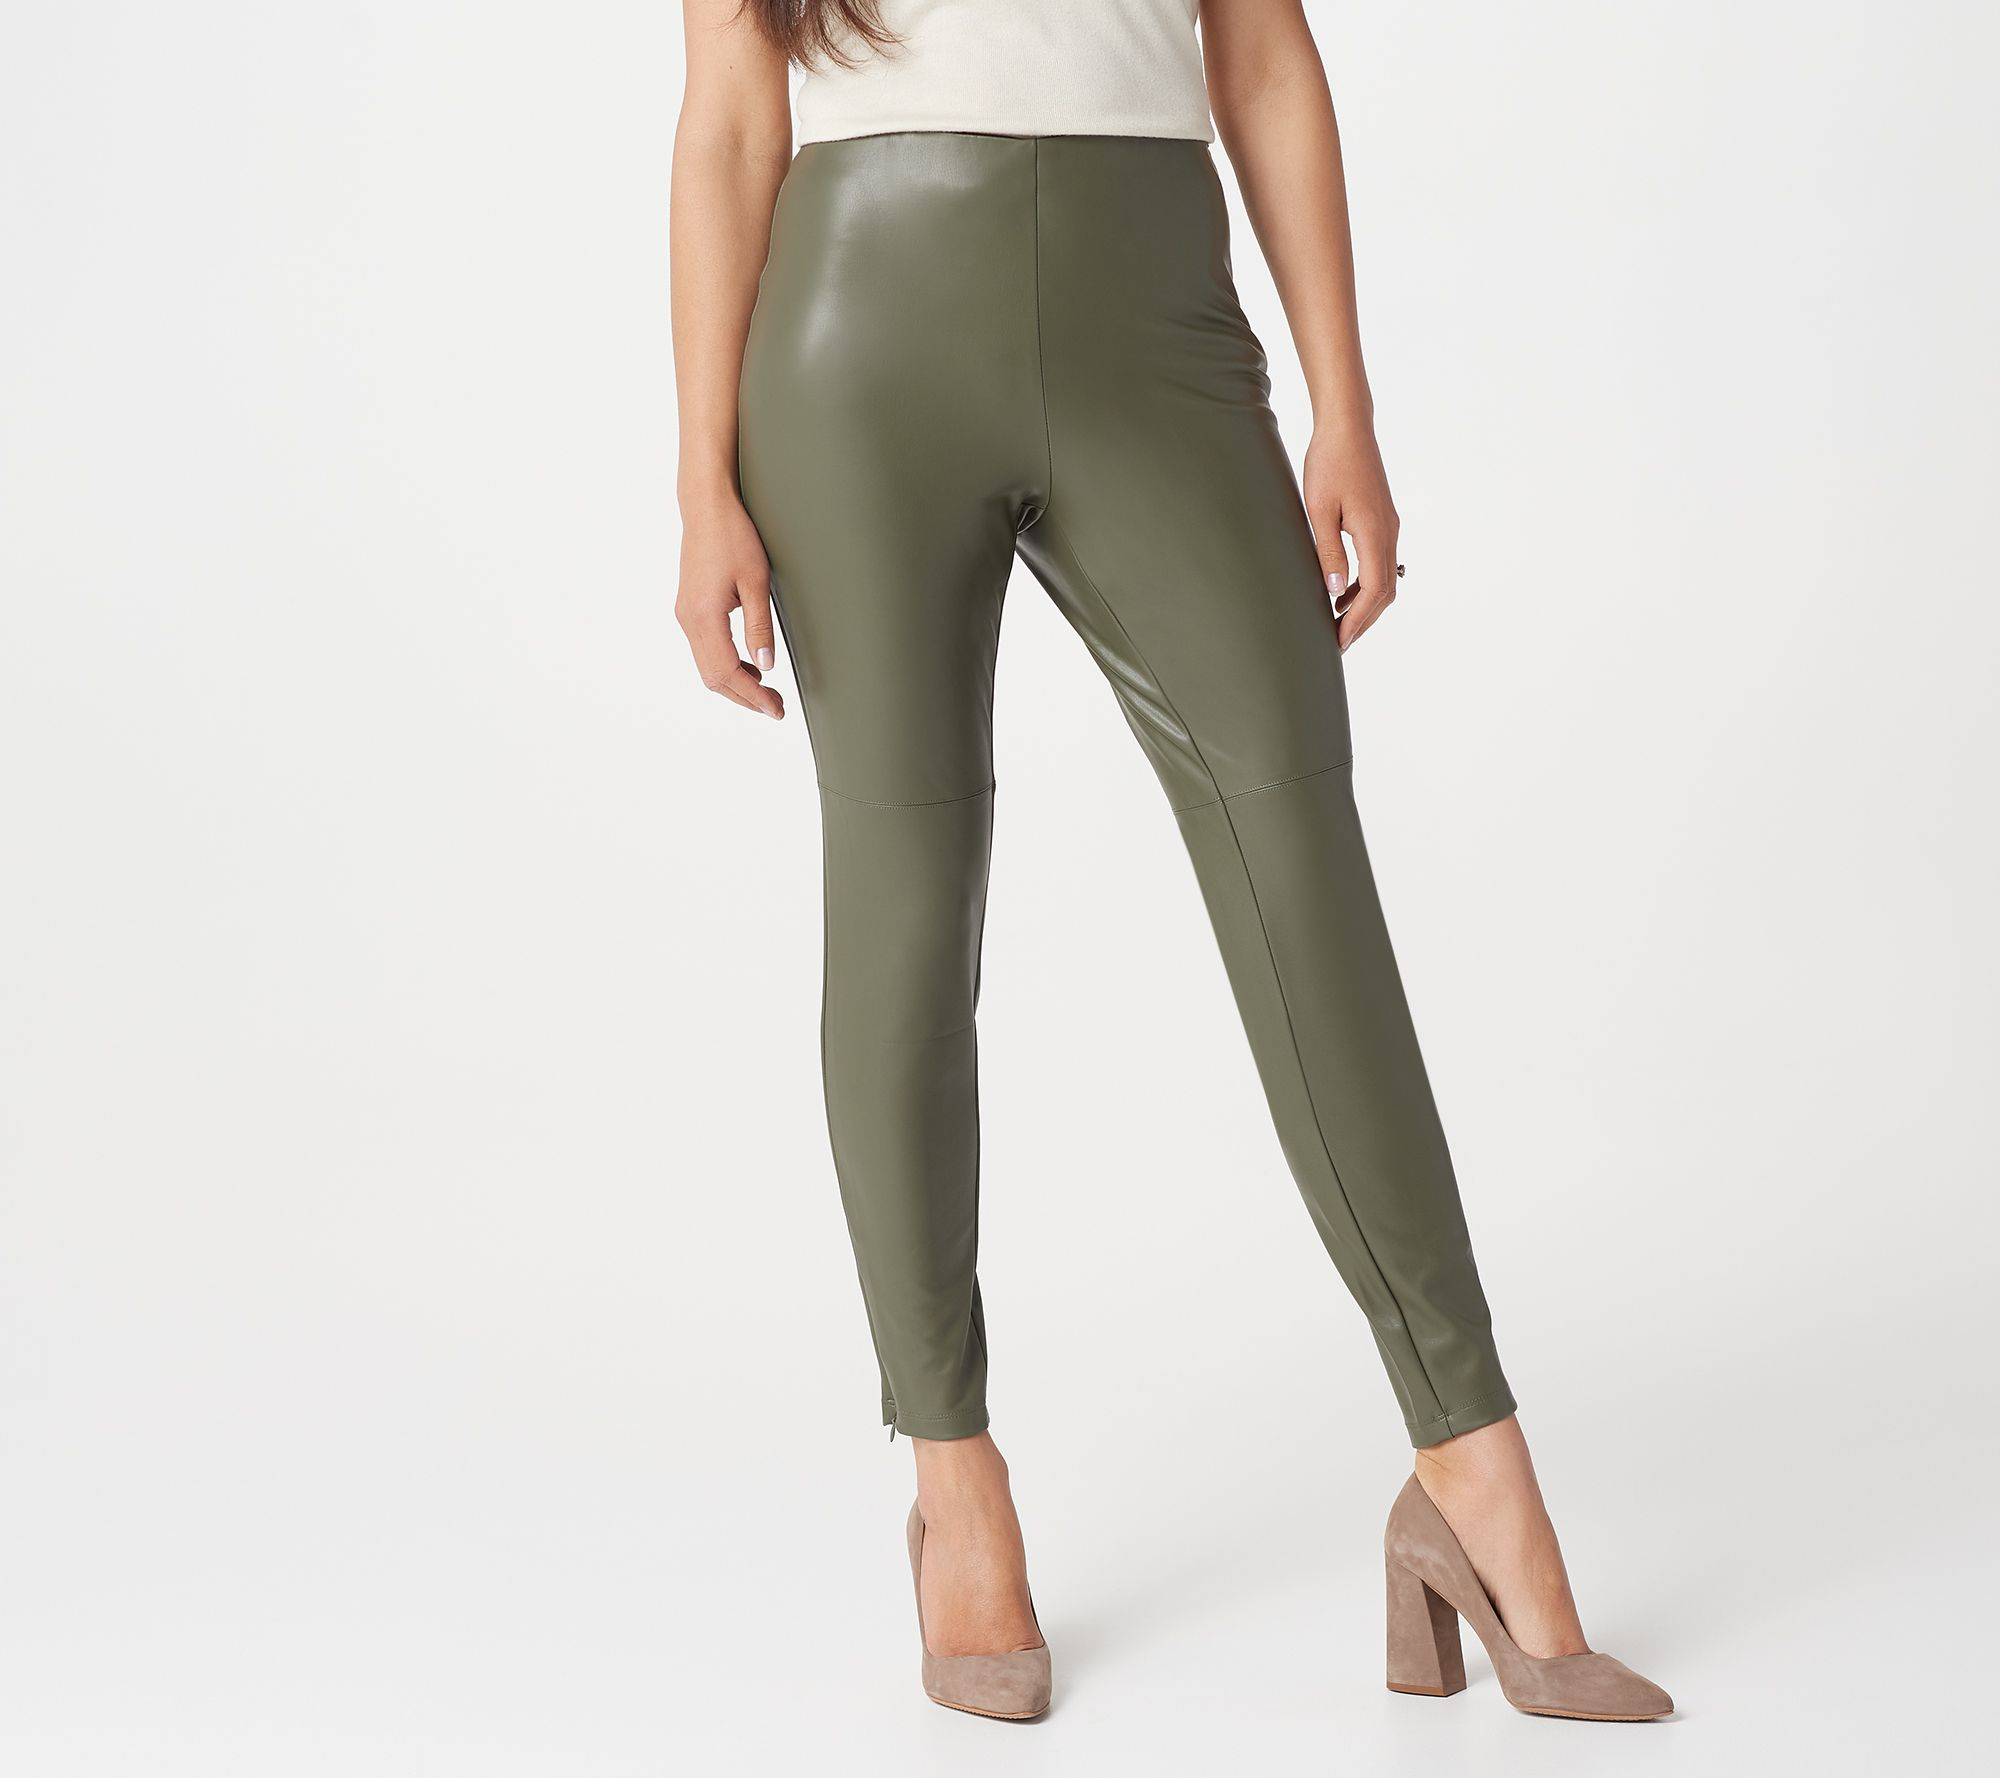 8244bd311cd05 Lisa Rinna Collection Faux Leather Leggings - Page 1 — QVC.com